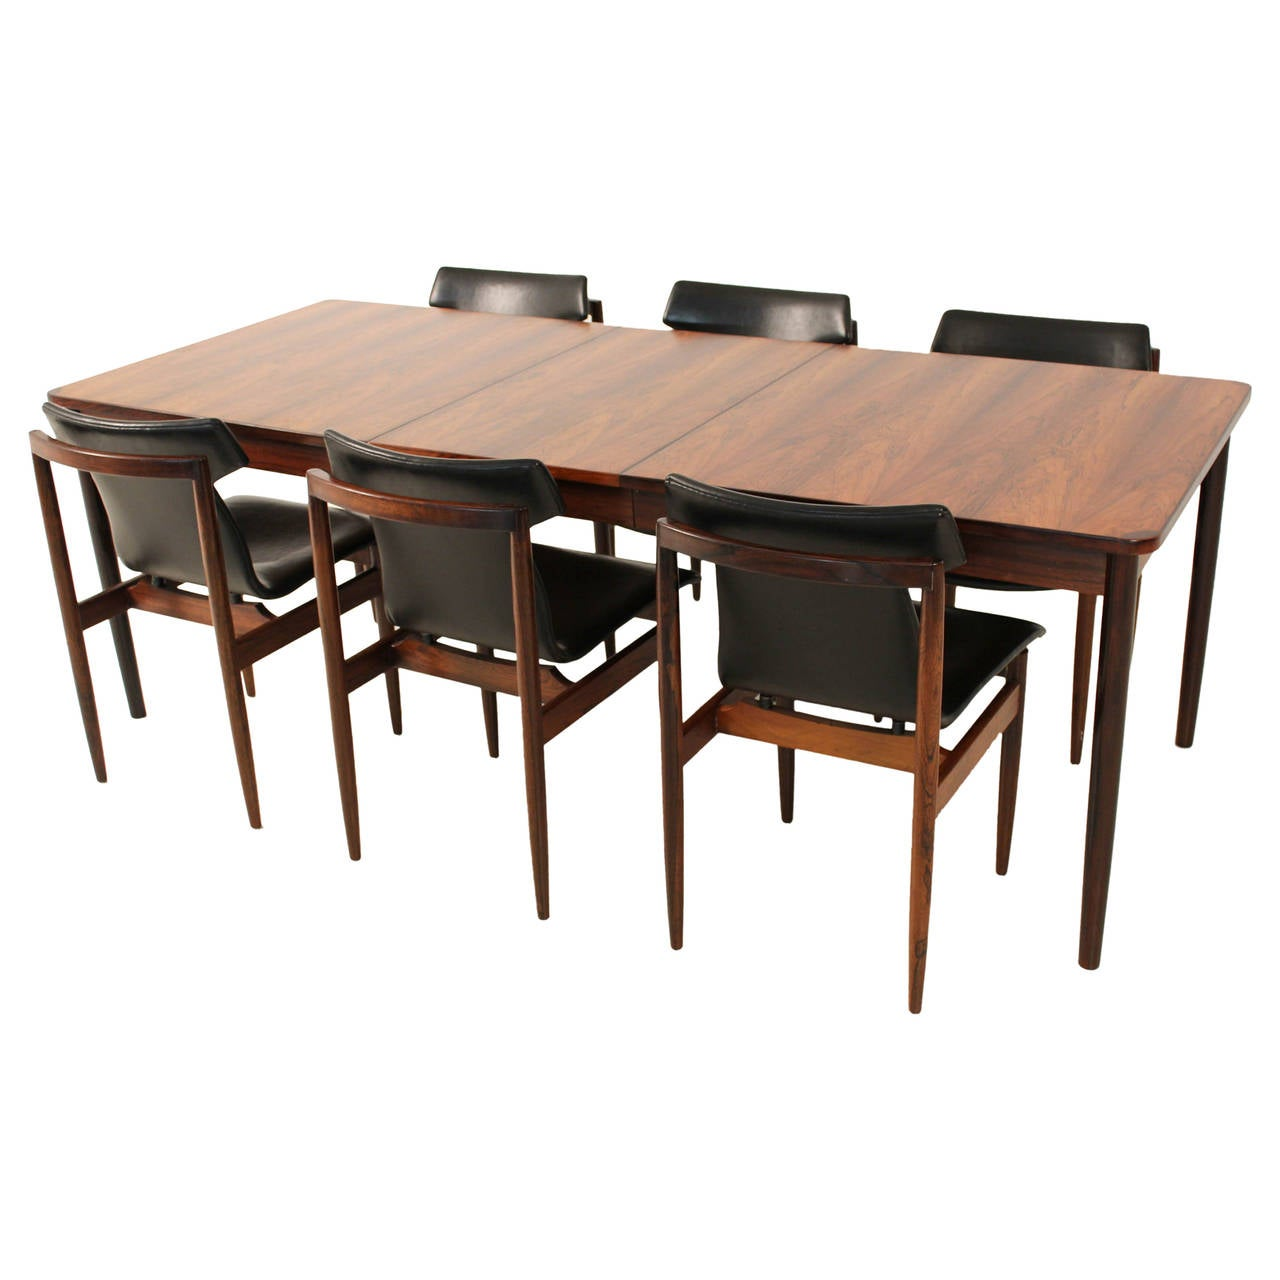 Mid century modern dining table by fristho at 1stdibs for Modern dining furniture